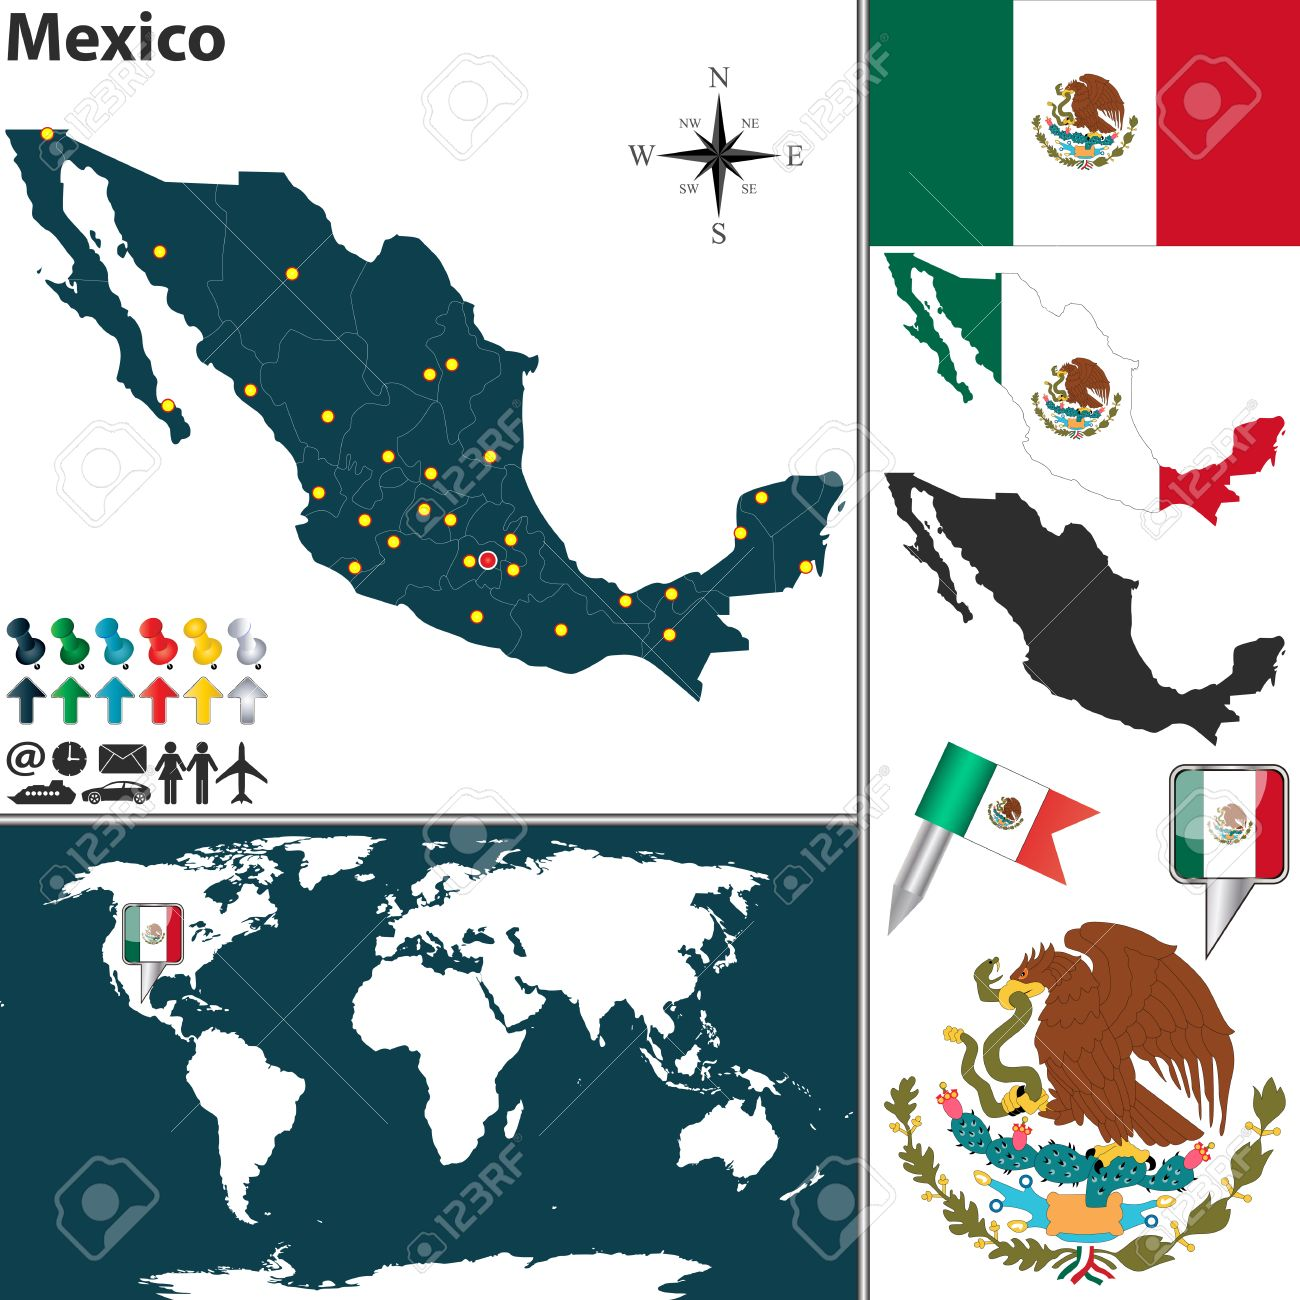 Vector Map Of Mexico With Regions Coat Of Arms And Location - Mexico regions map